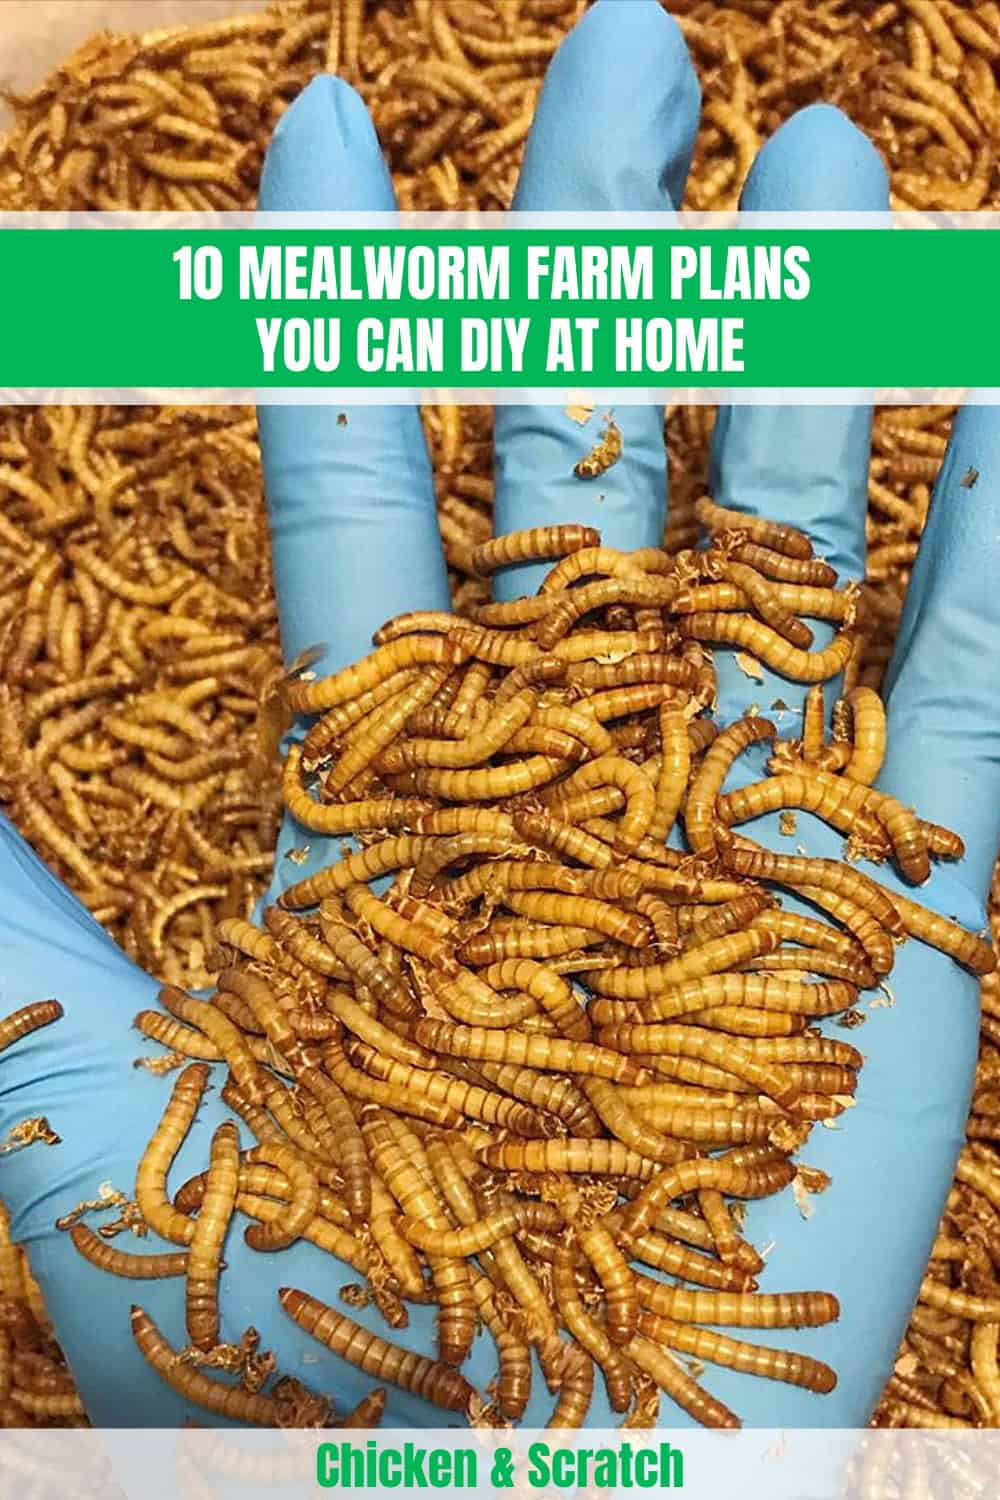 10 Mealworm Farm Plans You Can Diy At Home